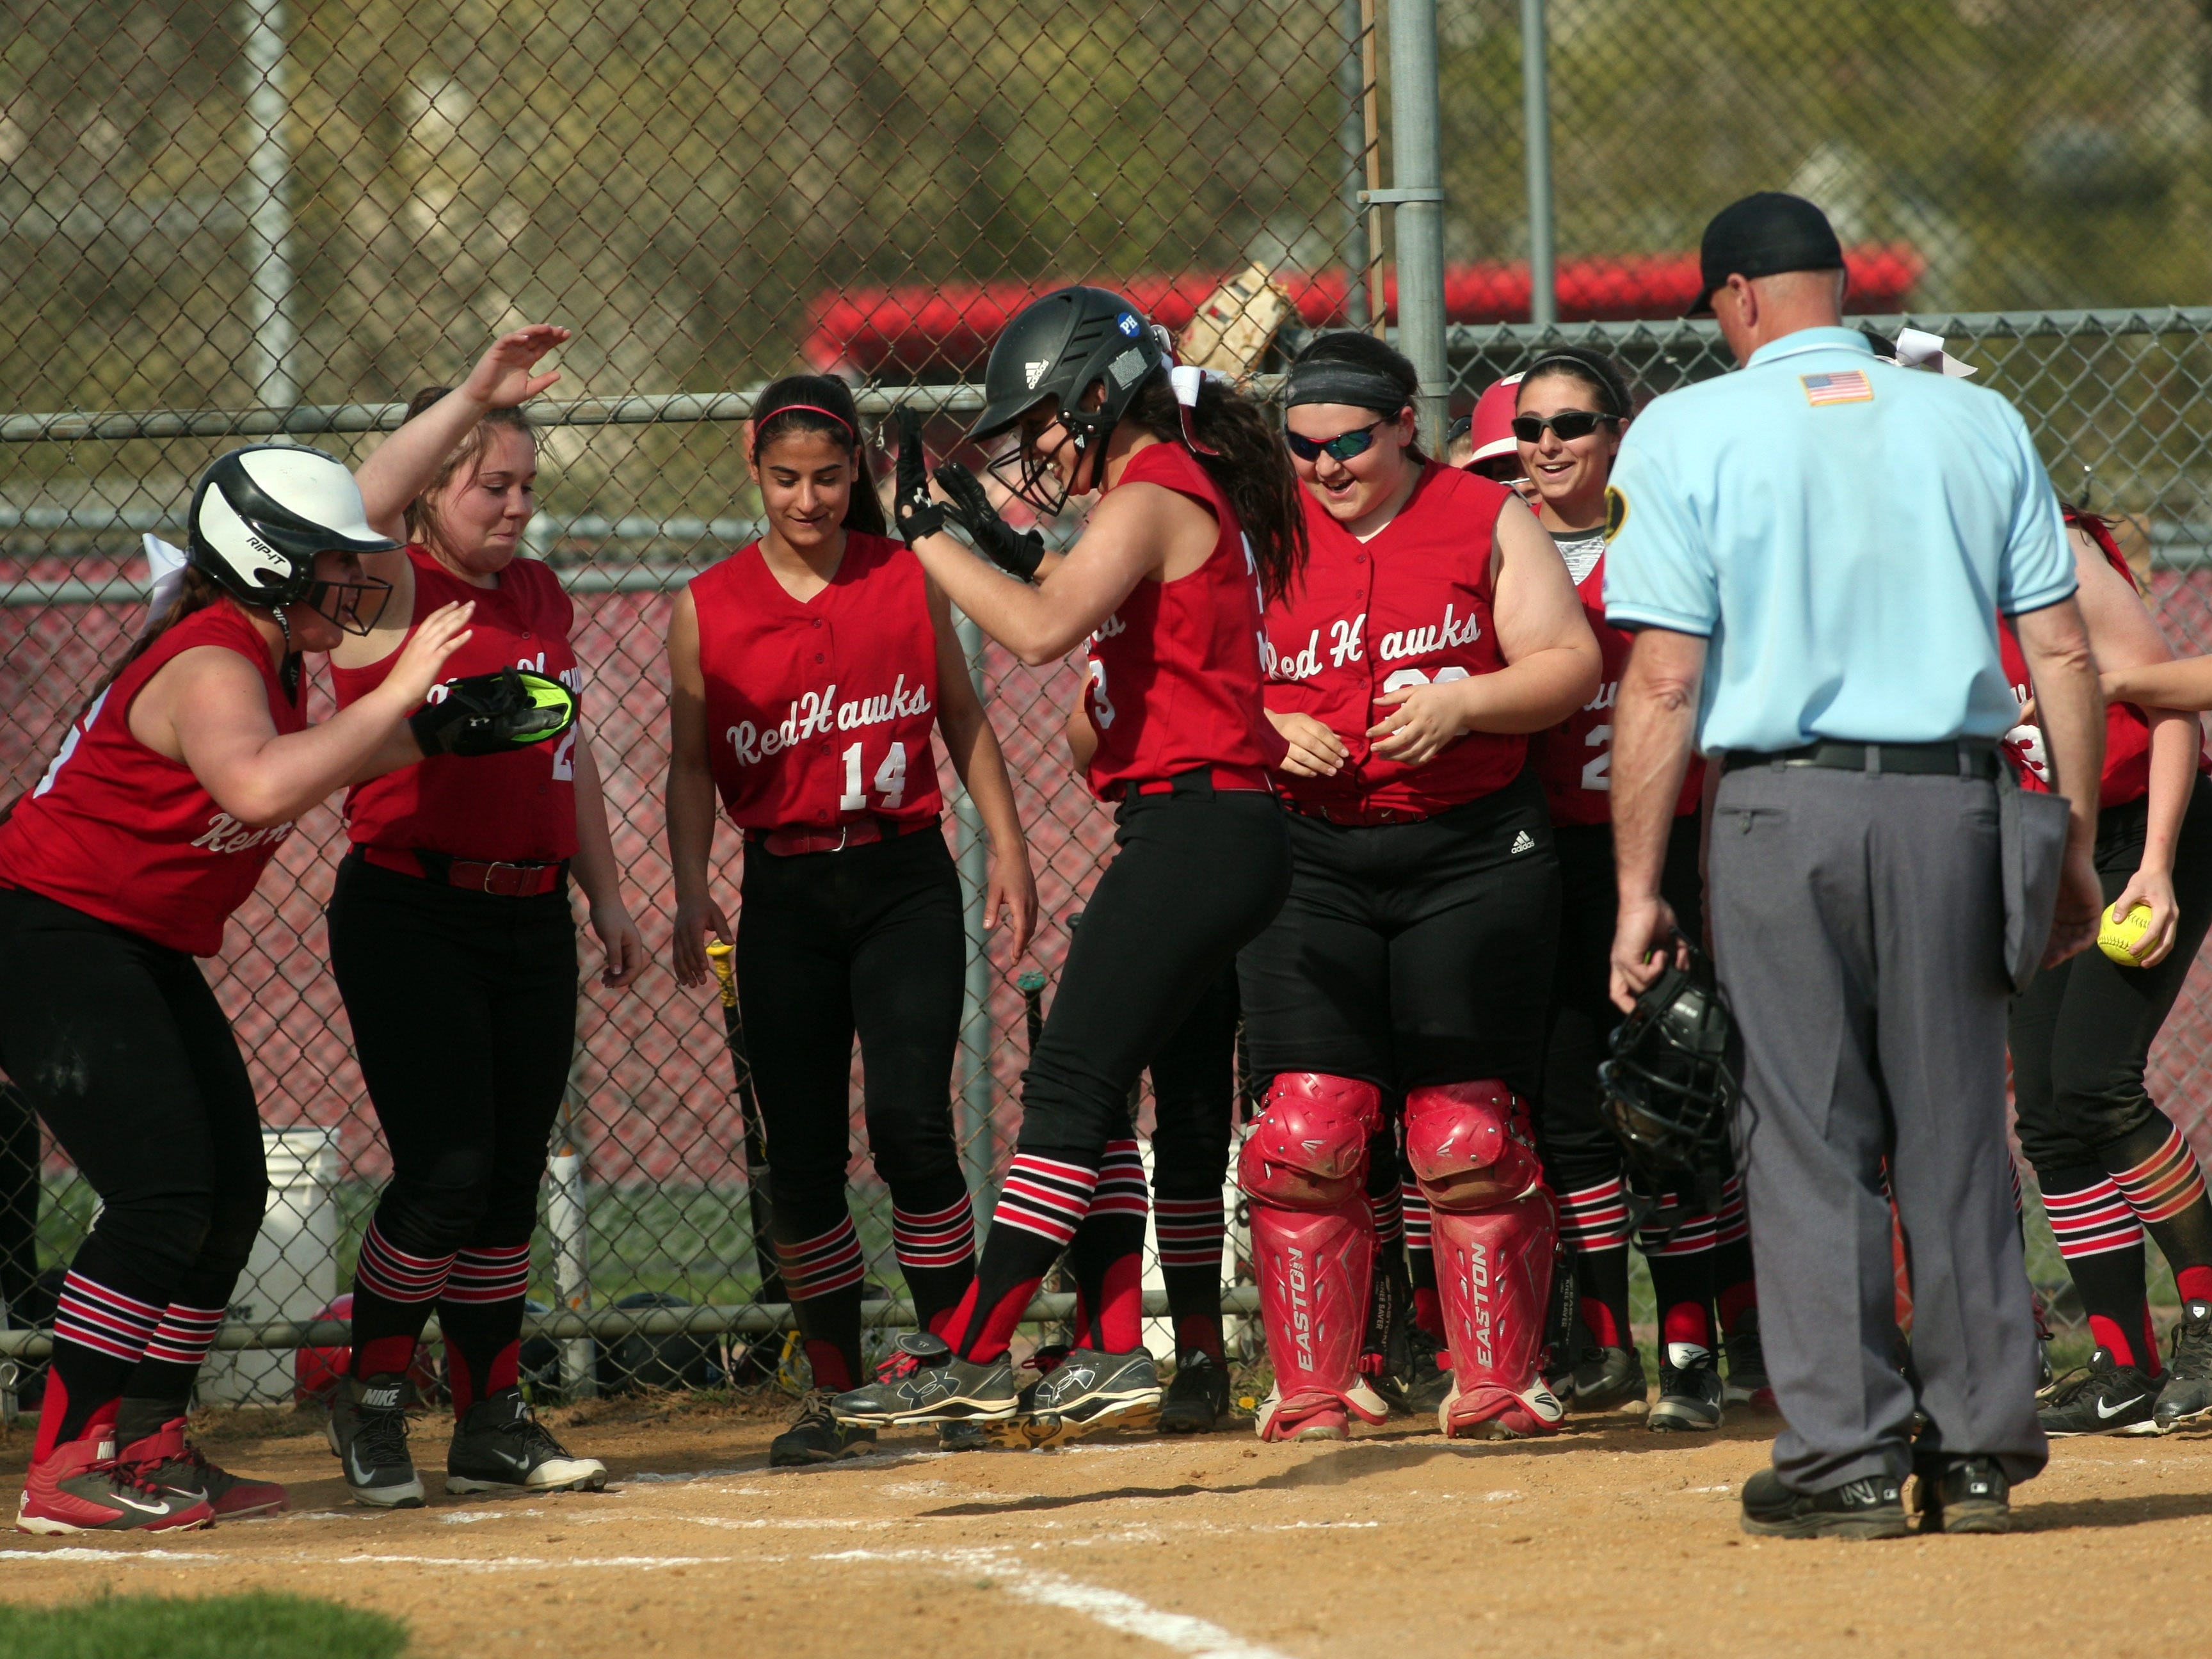 Parsippany's Kaila Migliazza (3) is congratulated after a home run vs. Mendham during their softball matchup in the first round of the Morris County Tournament. Parsippany winning 11-7 to advance. April 28, 2015. Parsippany, N.J. Bob Karp/Staff Photographer.